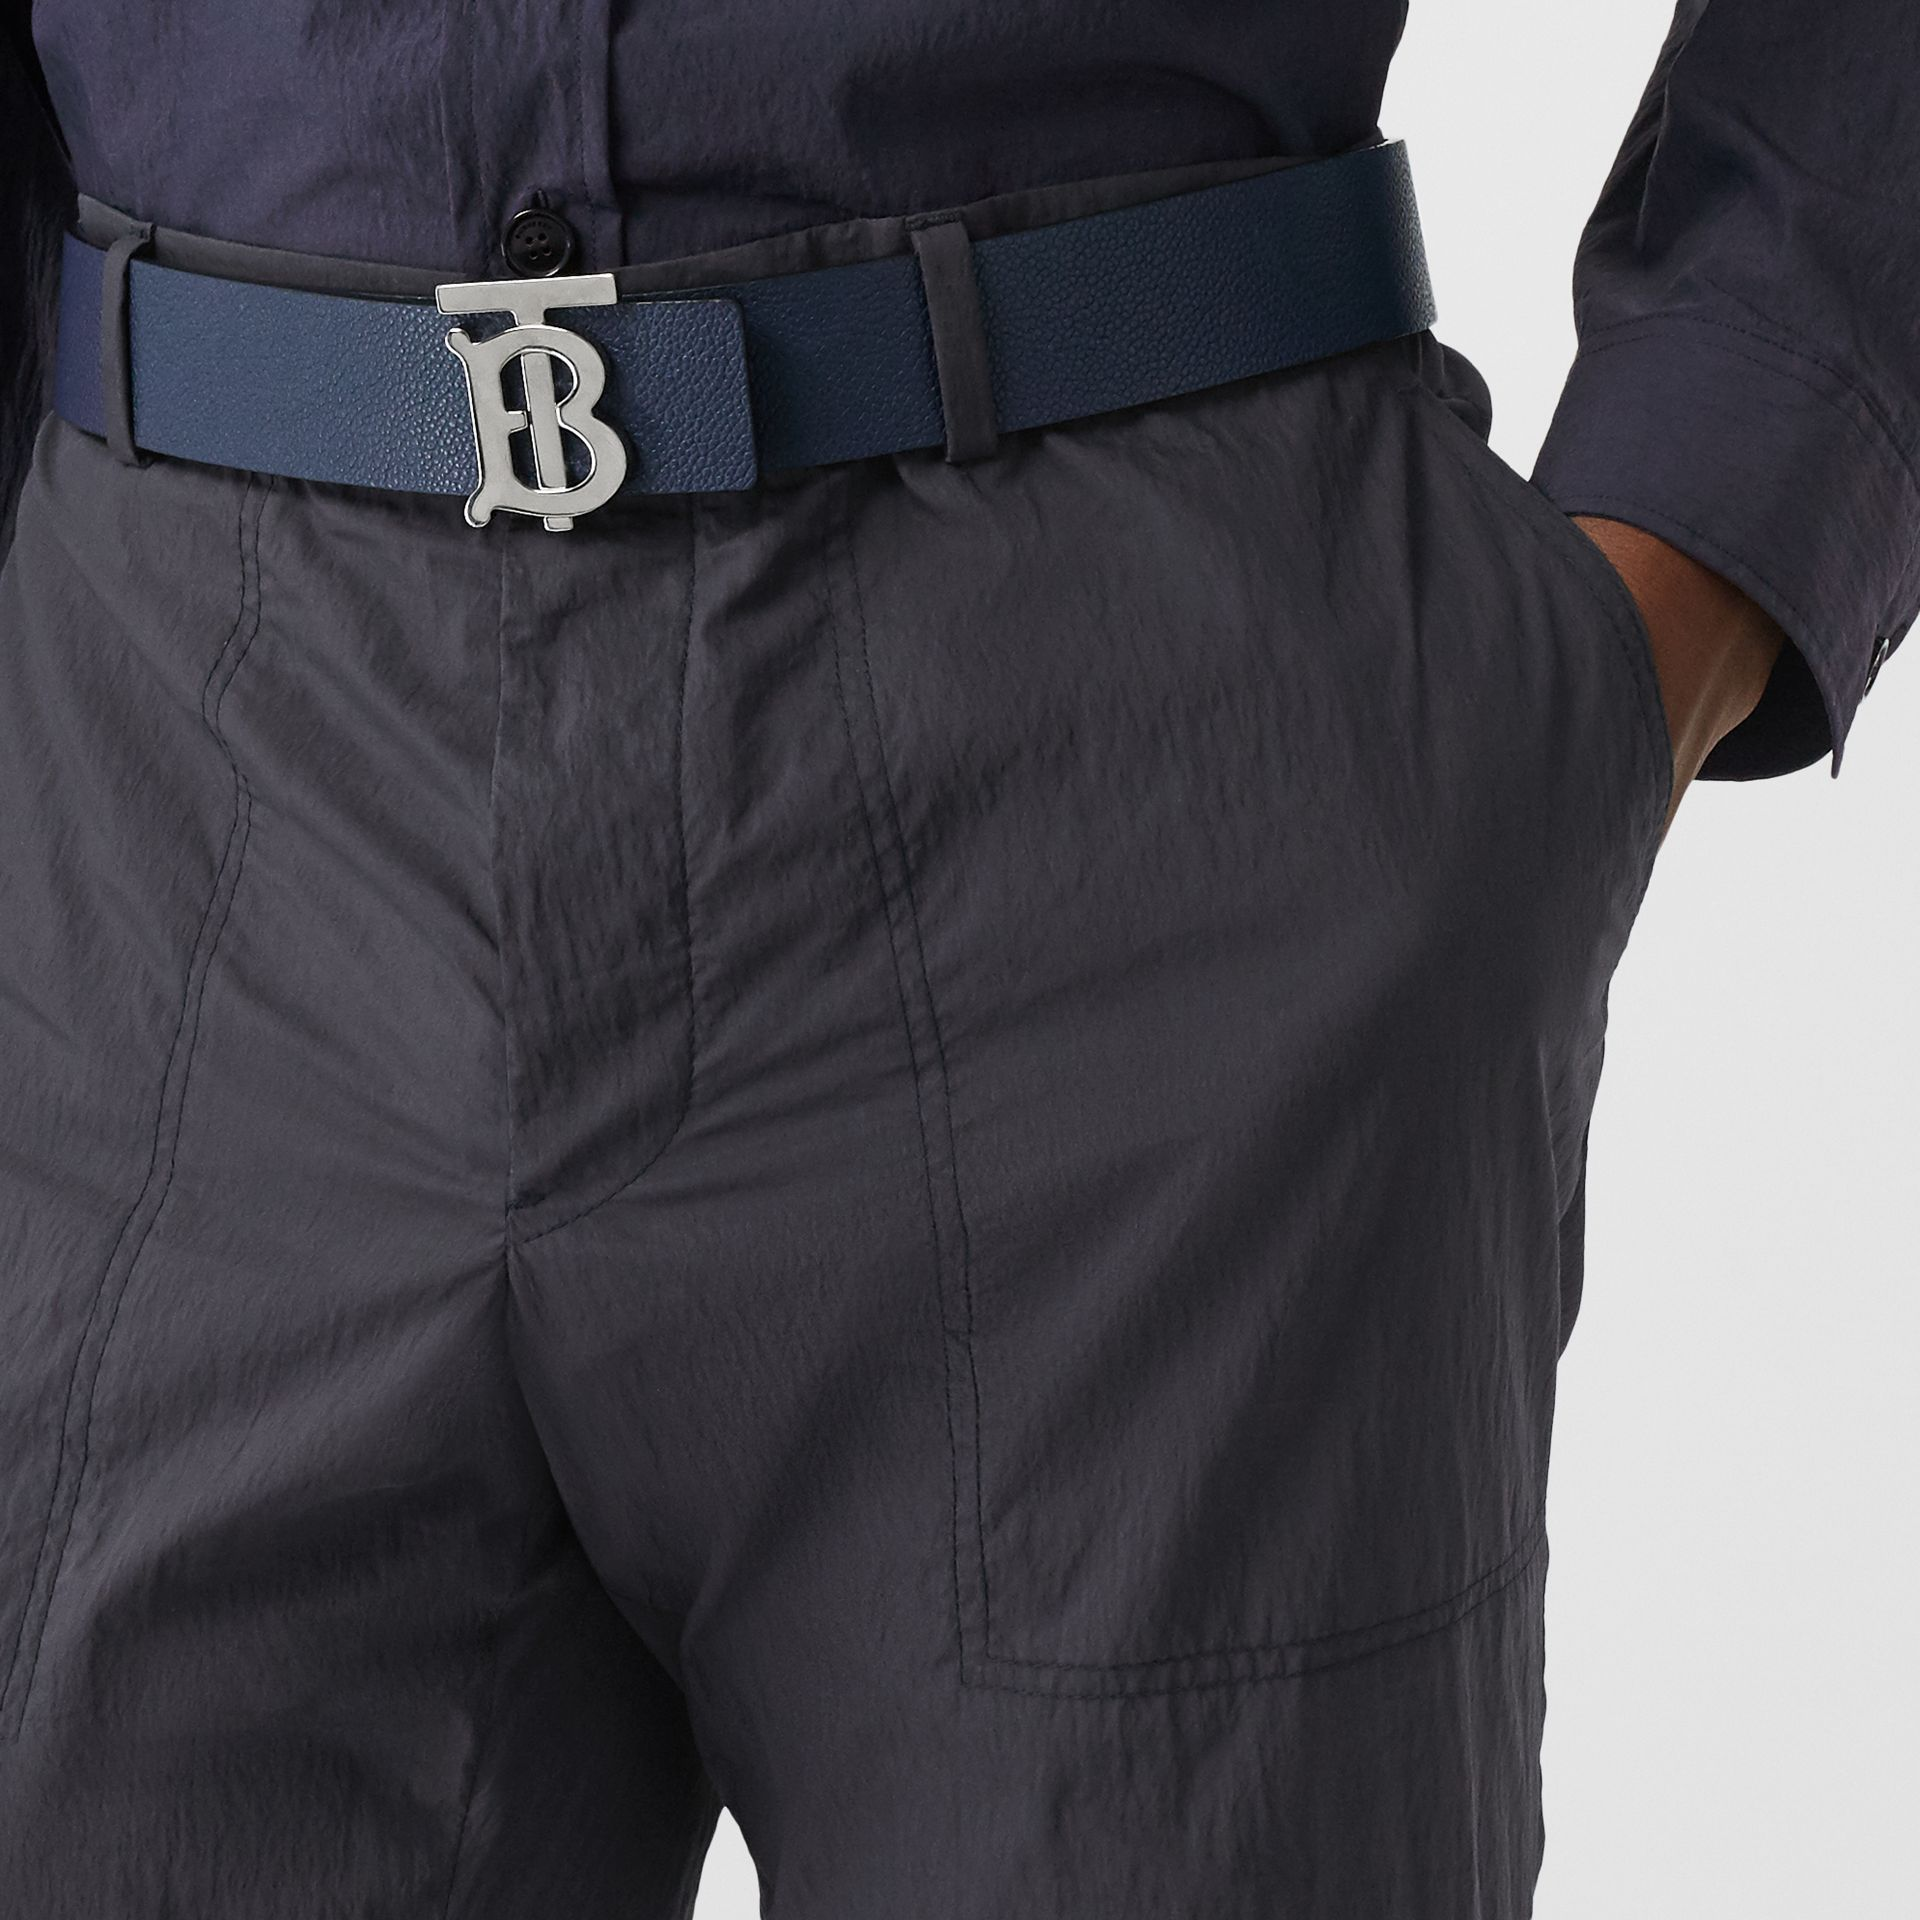 Classic Fit Cotton Blend Tailored Trousers in Navy - Men | Burberry - gallery image 1